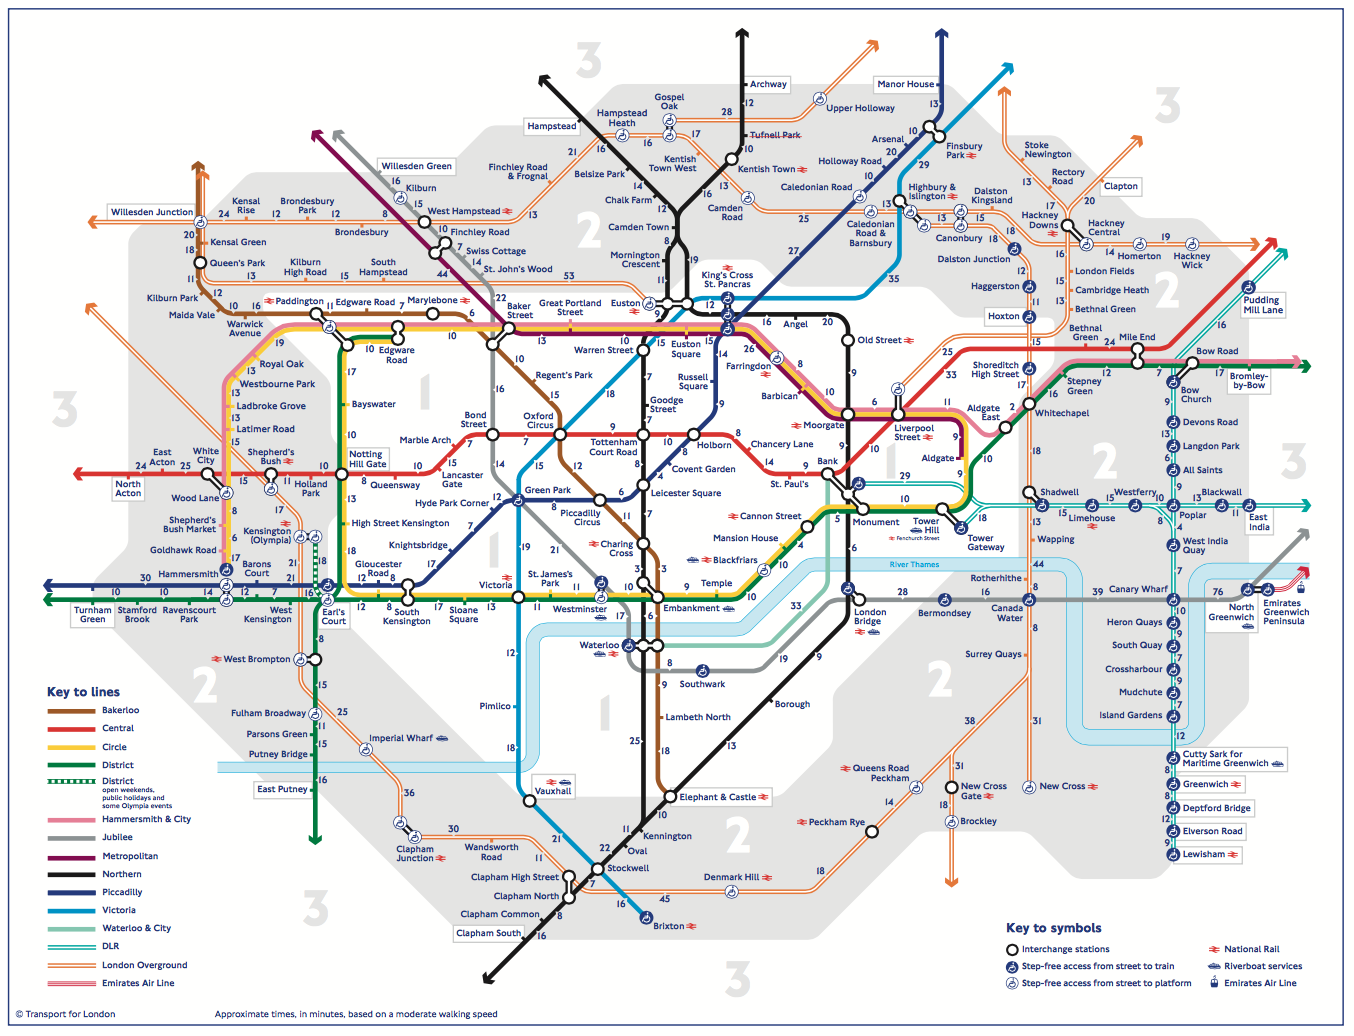 A new London Tube map shows walking times between stations News